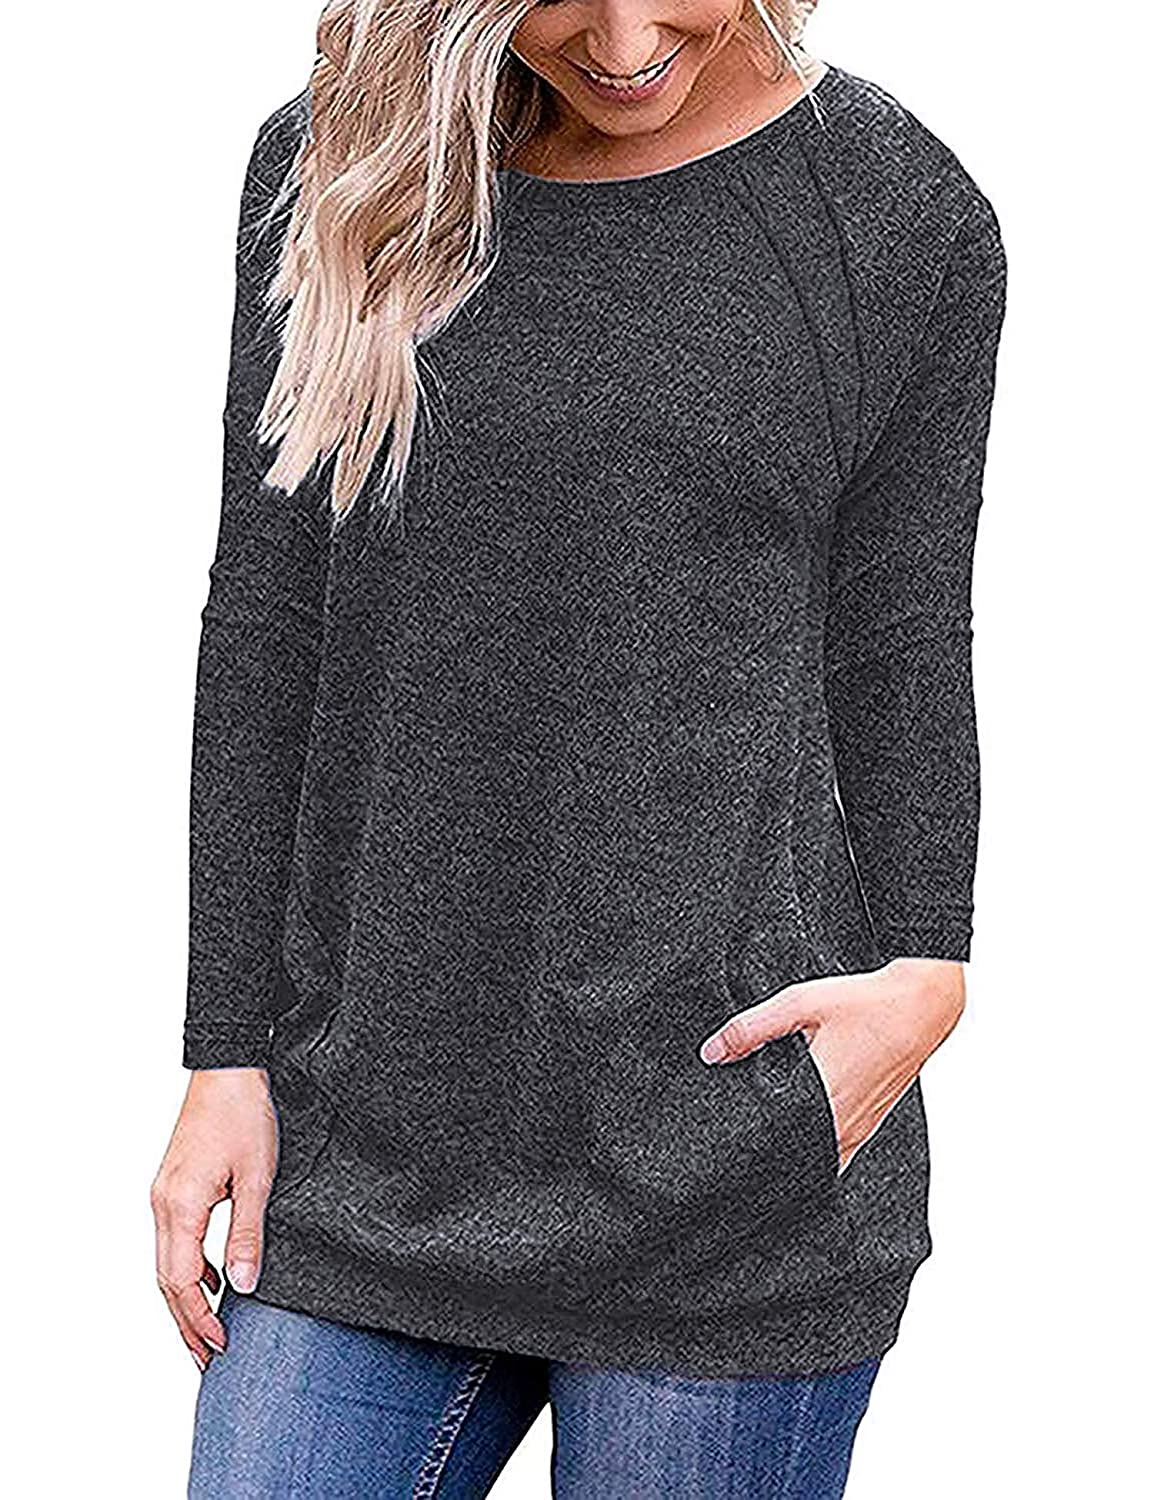 iClosam Women's Casual Short Sleeve T-Shirt Round Neck Loose Tunic Tops with Pockets